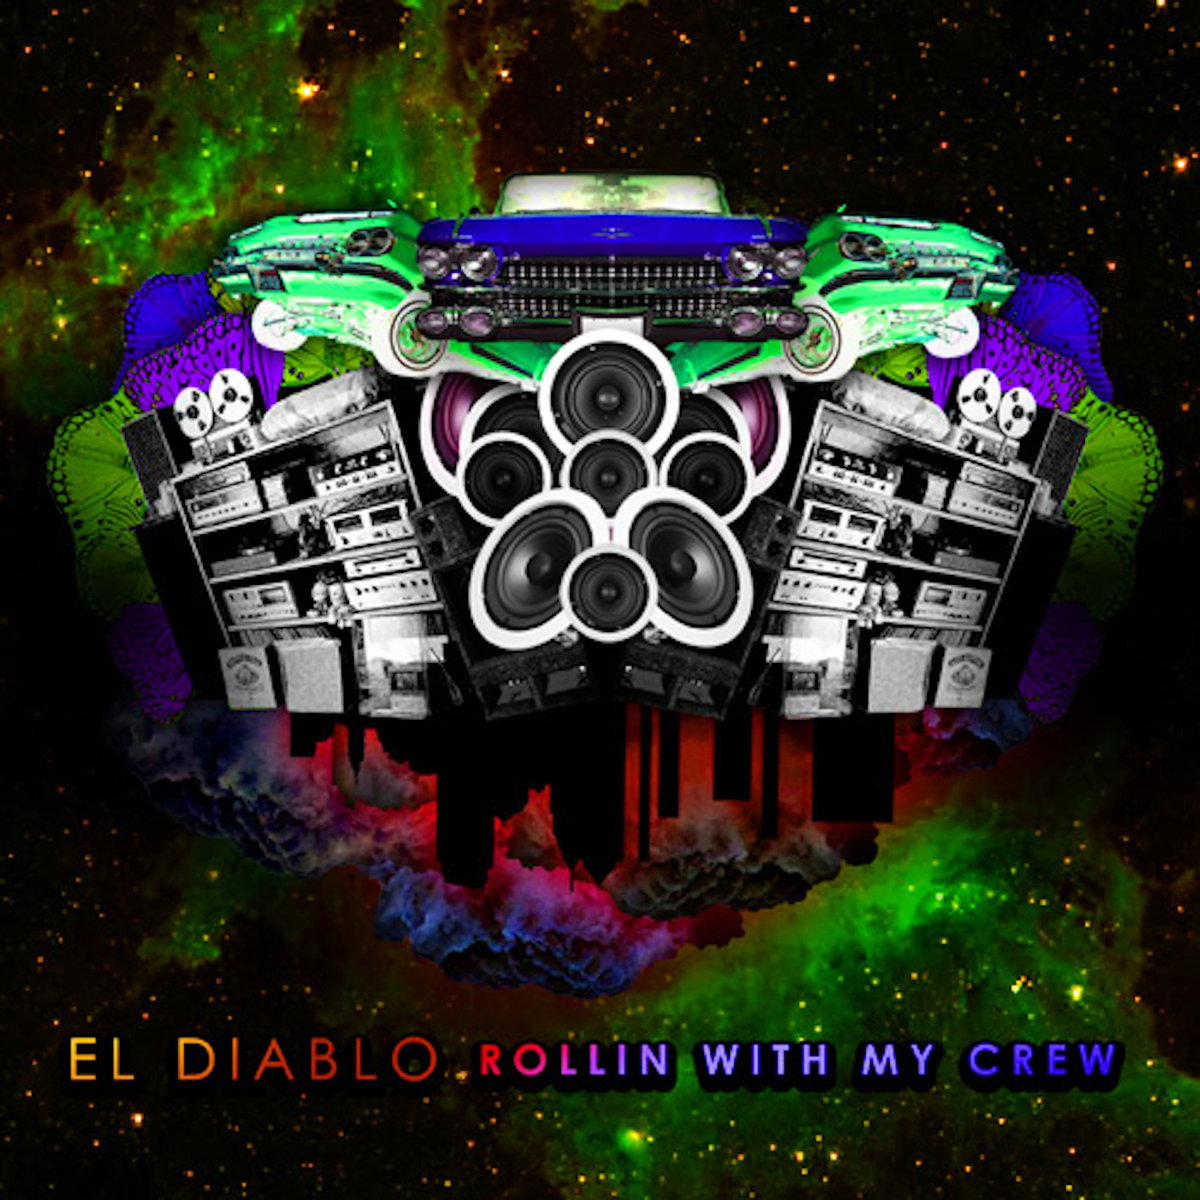 HD 4000 - Jekal (El Diablo Remix) @ 'Rollin With My Crew' album (electronic, dubstep)